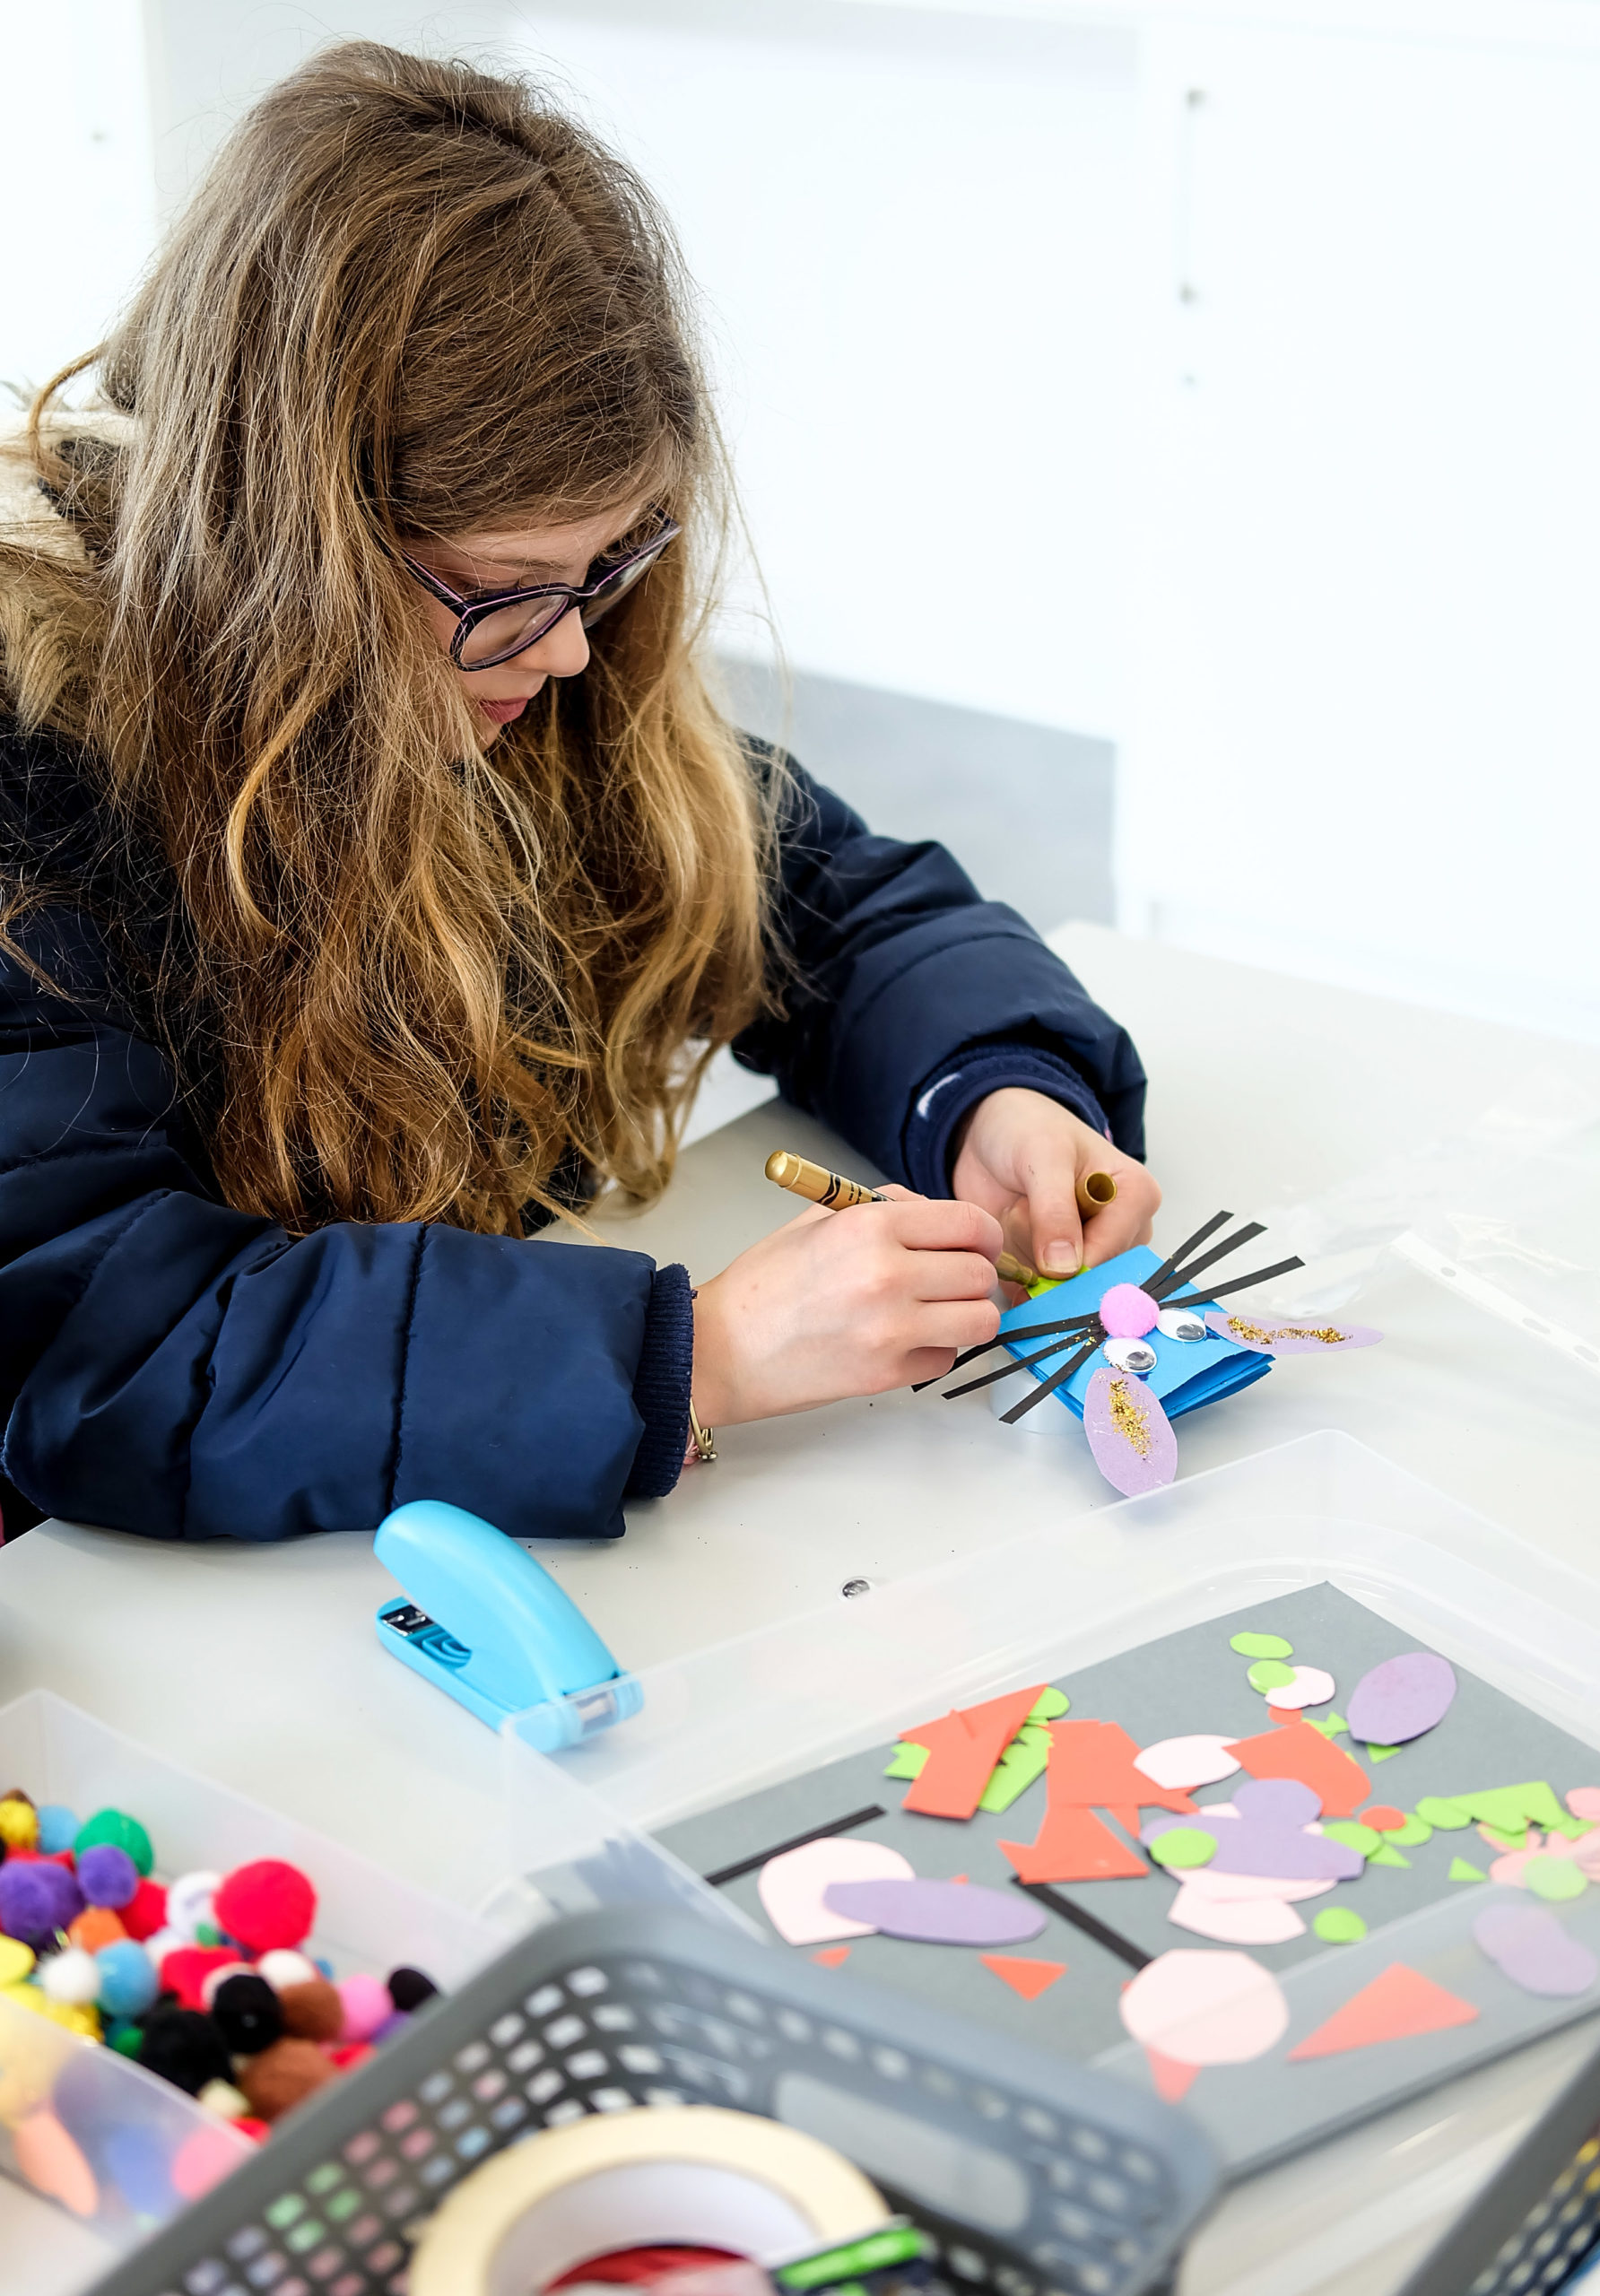 Modern colour photo of a girl creating crafts at a table, photo copyright Claire Chamberlain